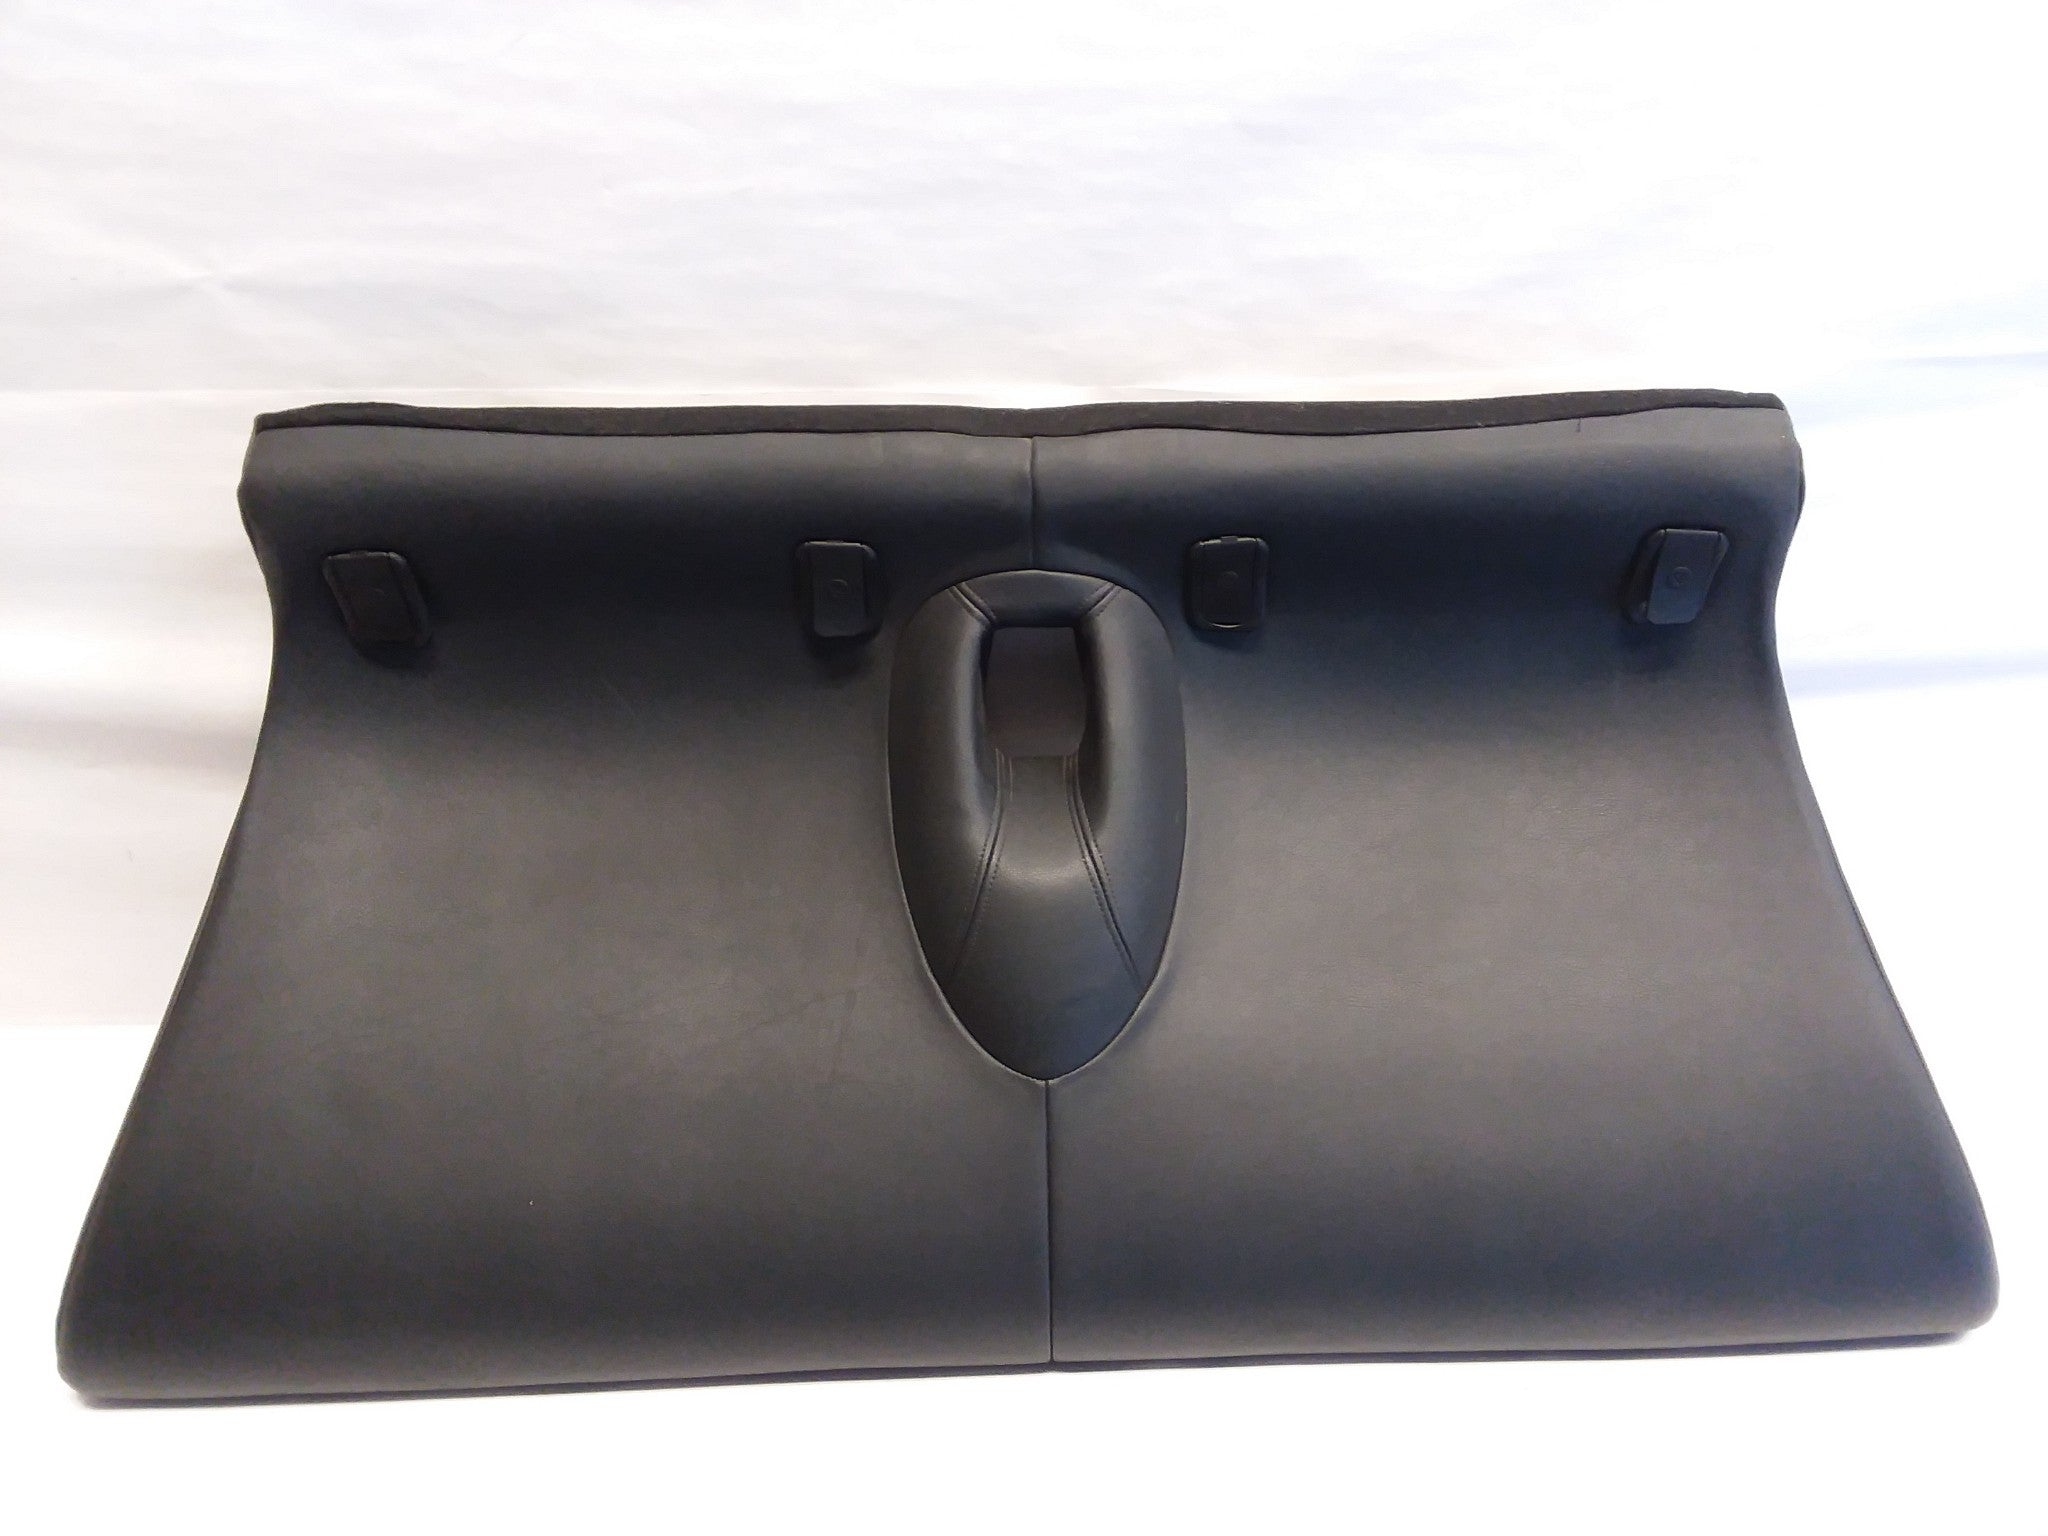 2002 - 2008 MINI COOPER R50 R52 R53 BLACK LEATHER REAR SEAT BOTTOM OEM